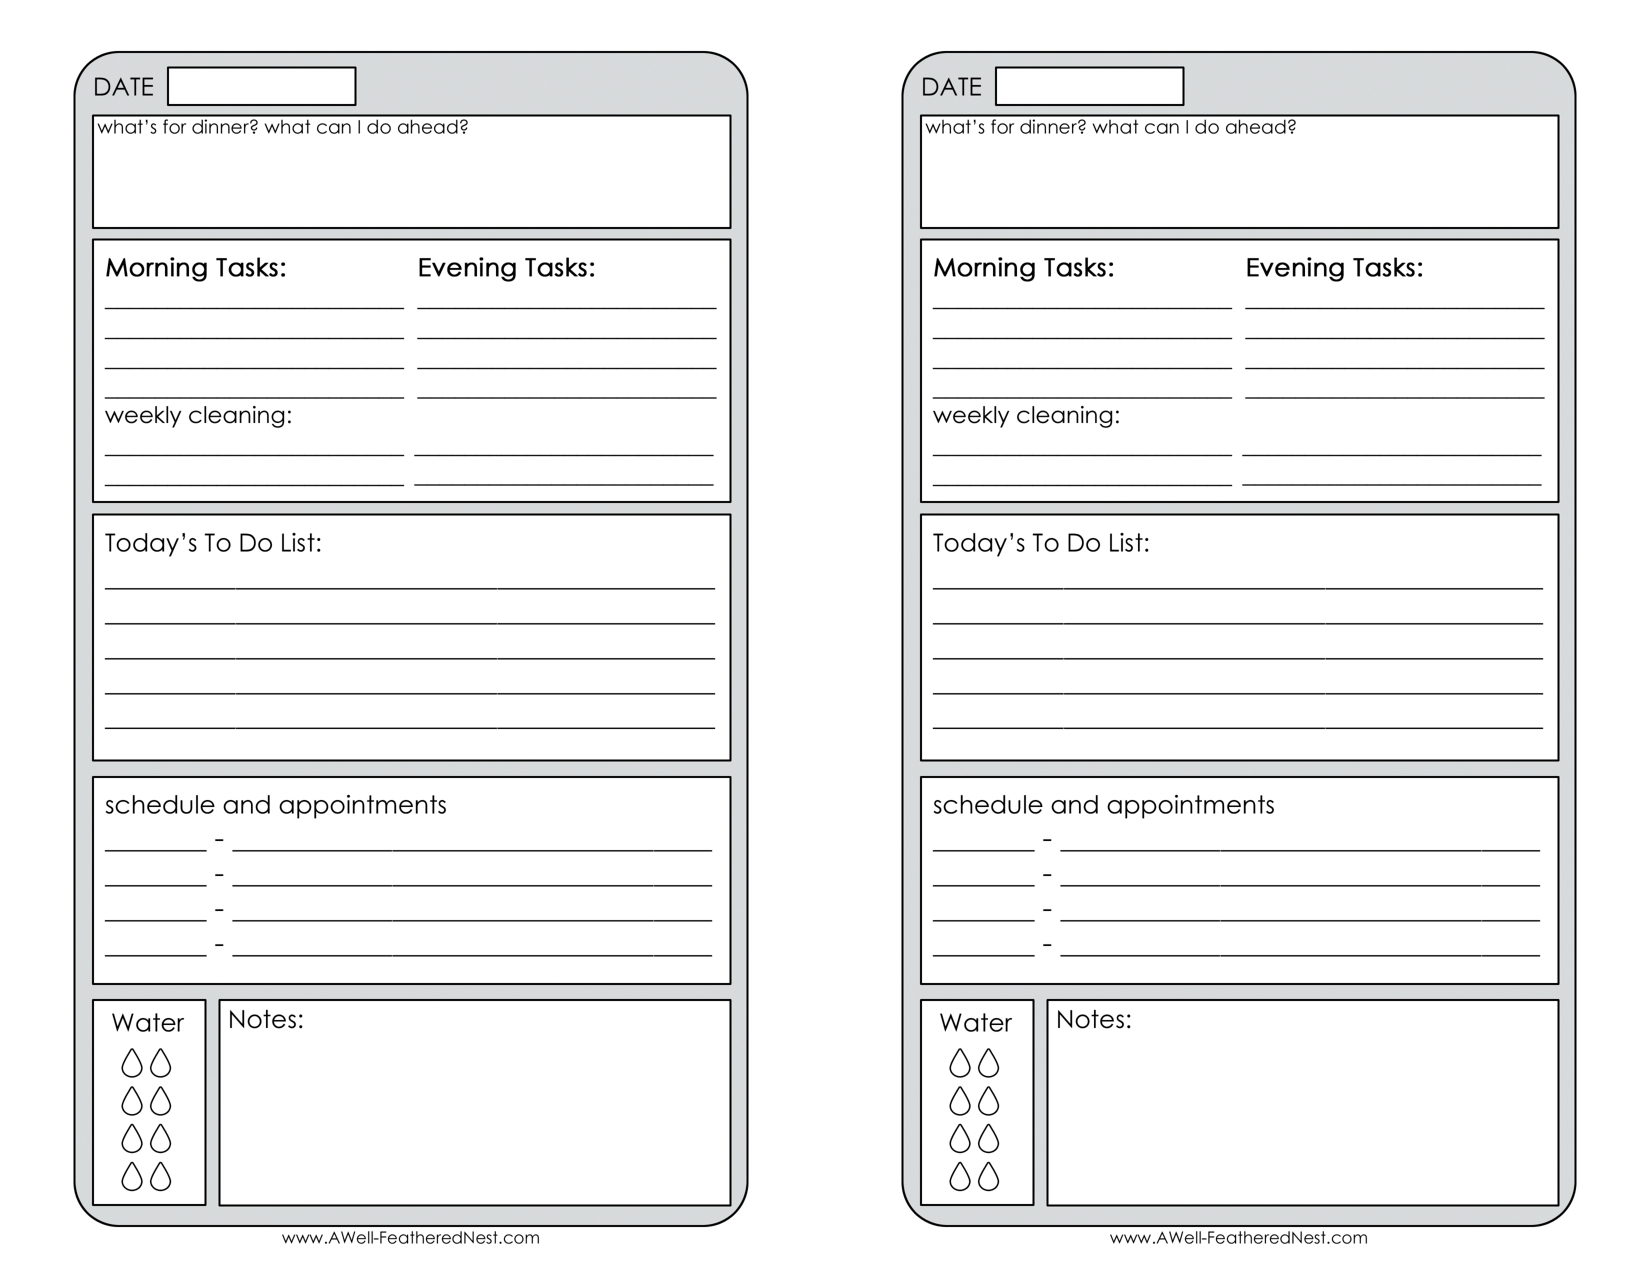 Free Printable Daily Planner   Planner Pages- Half Page   Planners inside Free Printable Daily Planner Page Half